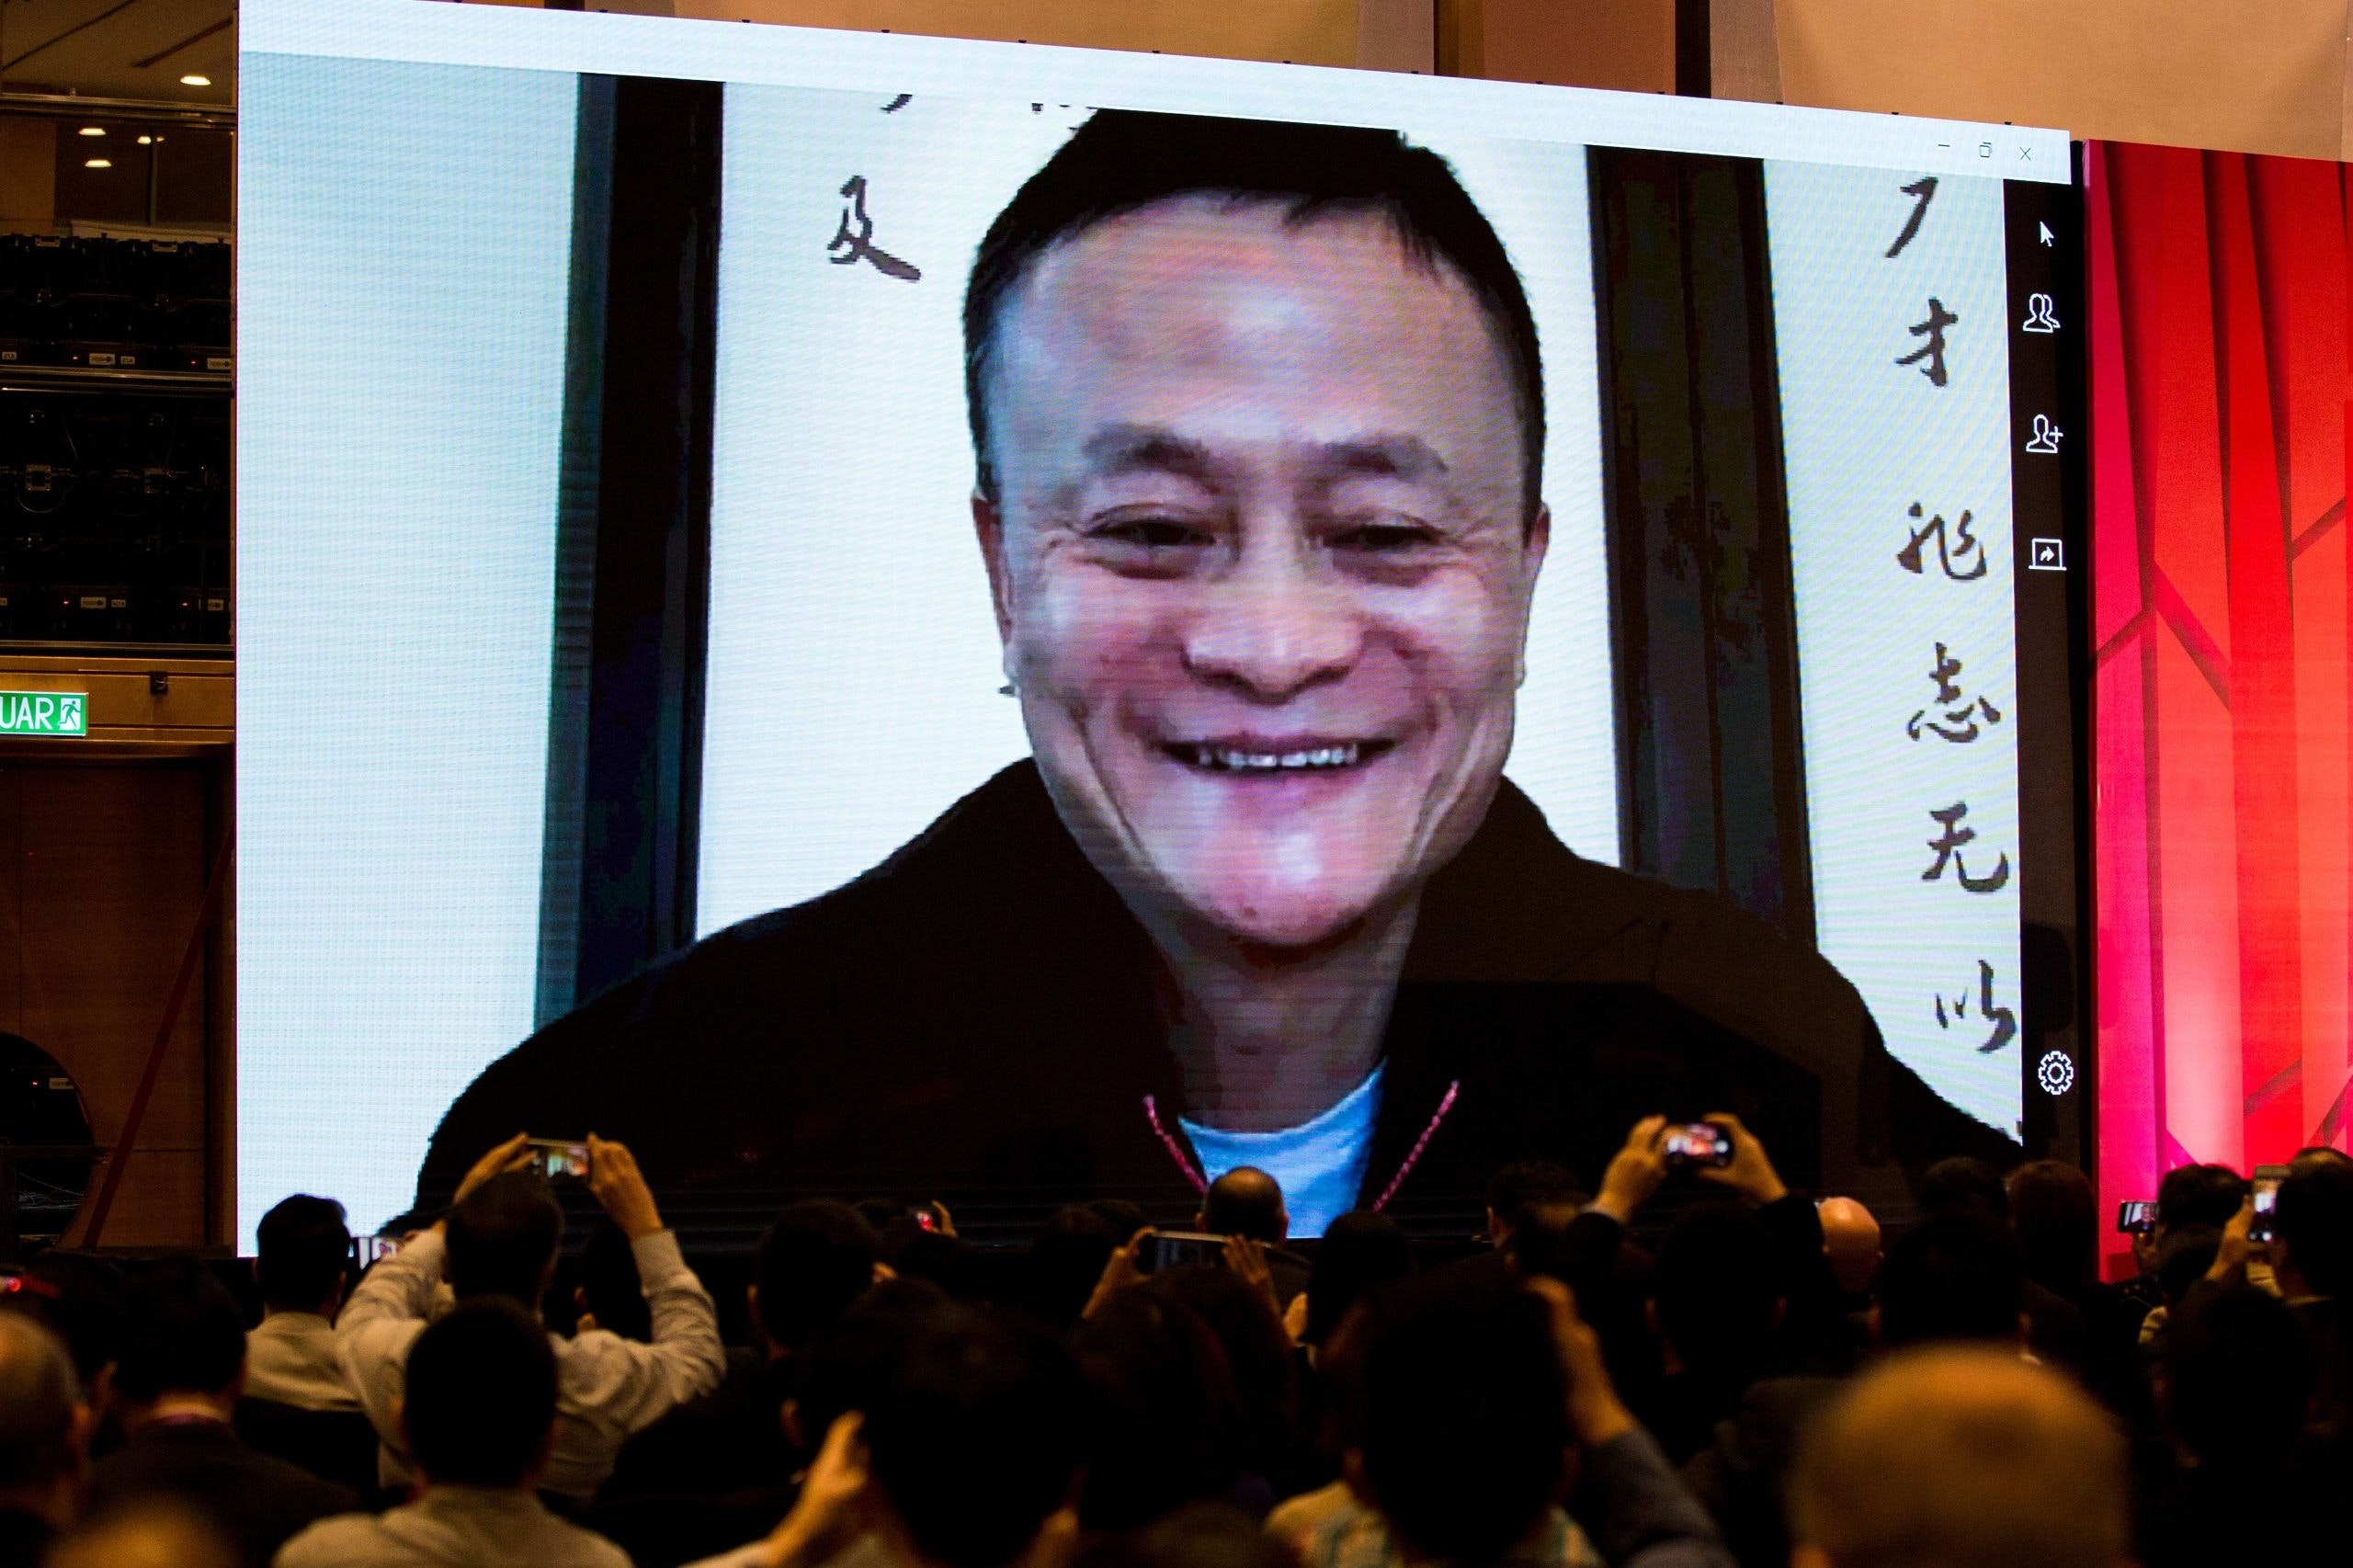 (181010) -- KUALA LUMPUR, Oct. 10, 2018 -- Jack Ma, founder of China s e-commerce giant Alibaba, speaks to audience via video call during the China Conference organized by South China Morning Post in the Malaysia s capital Kuala Lumpur, Oct. 10, 2018. The conference brought together business, academic and political leaders to discuss cooperation between China and Southeast Asia on politics, economy, technology and how to tap opportunities of the Belt and Road Initiative, among others.) (hy) MALAYSIA-KUALA LUMPUR-CHINA CONFERENCE ZhuxWei PUBLICATIONxNOTxINxCHN